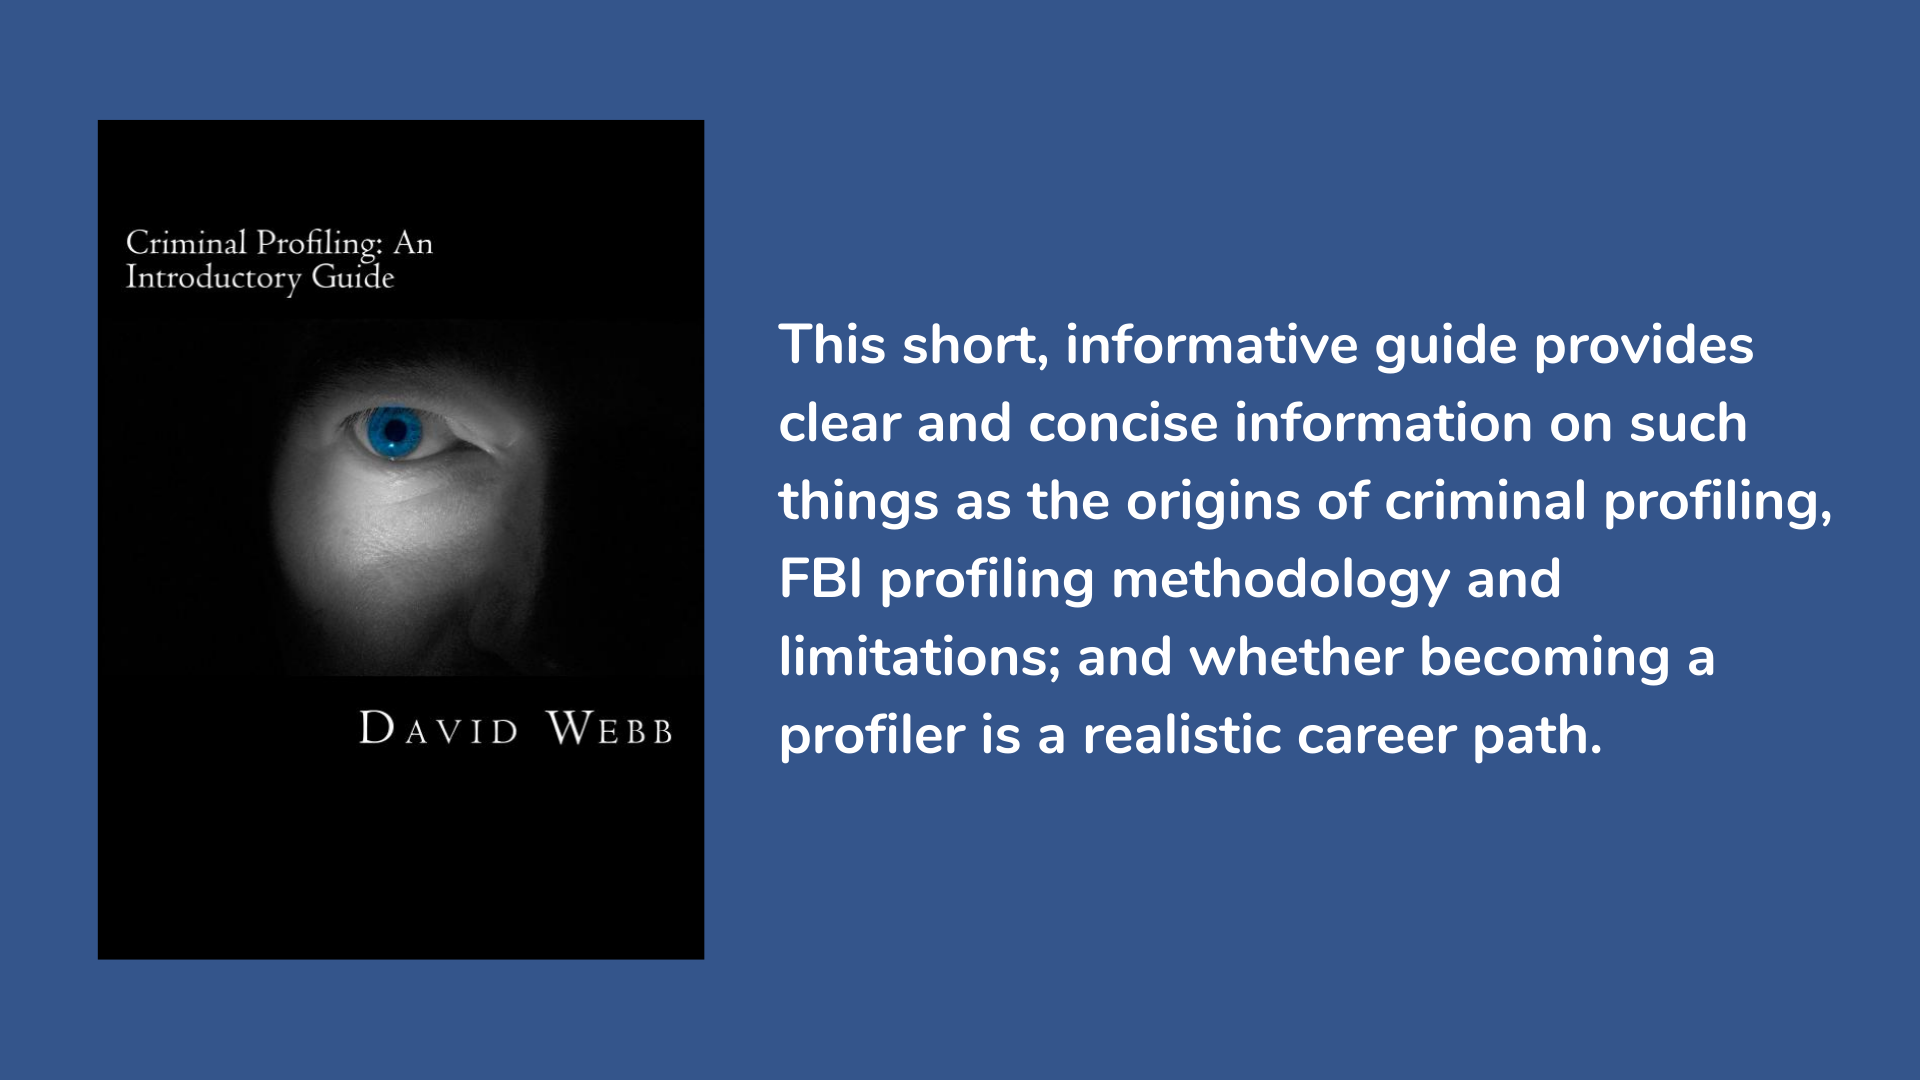 Criminal Profiling: An Introductory Guide Book Cover